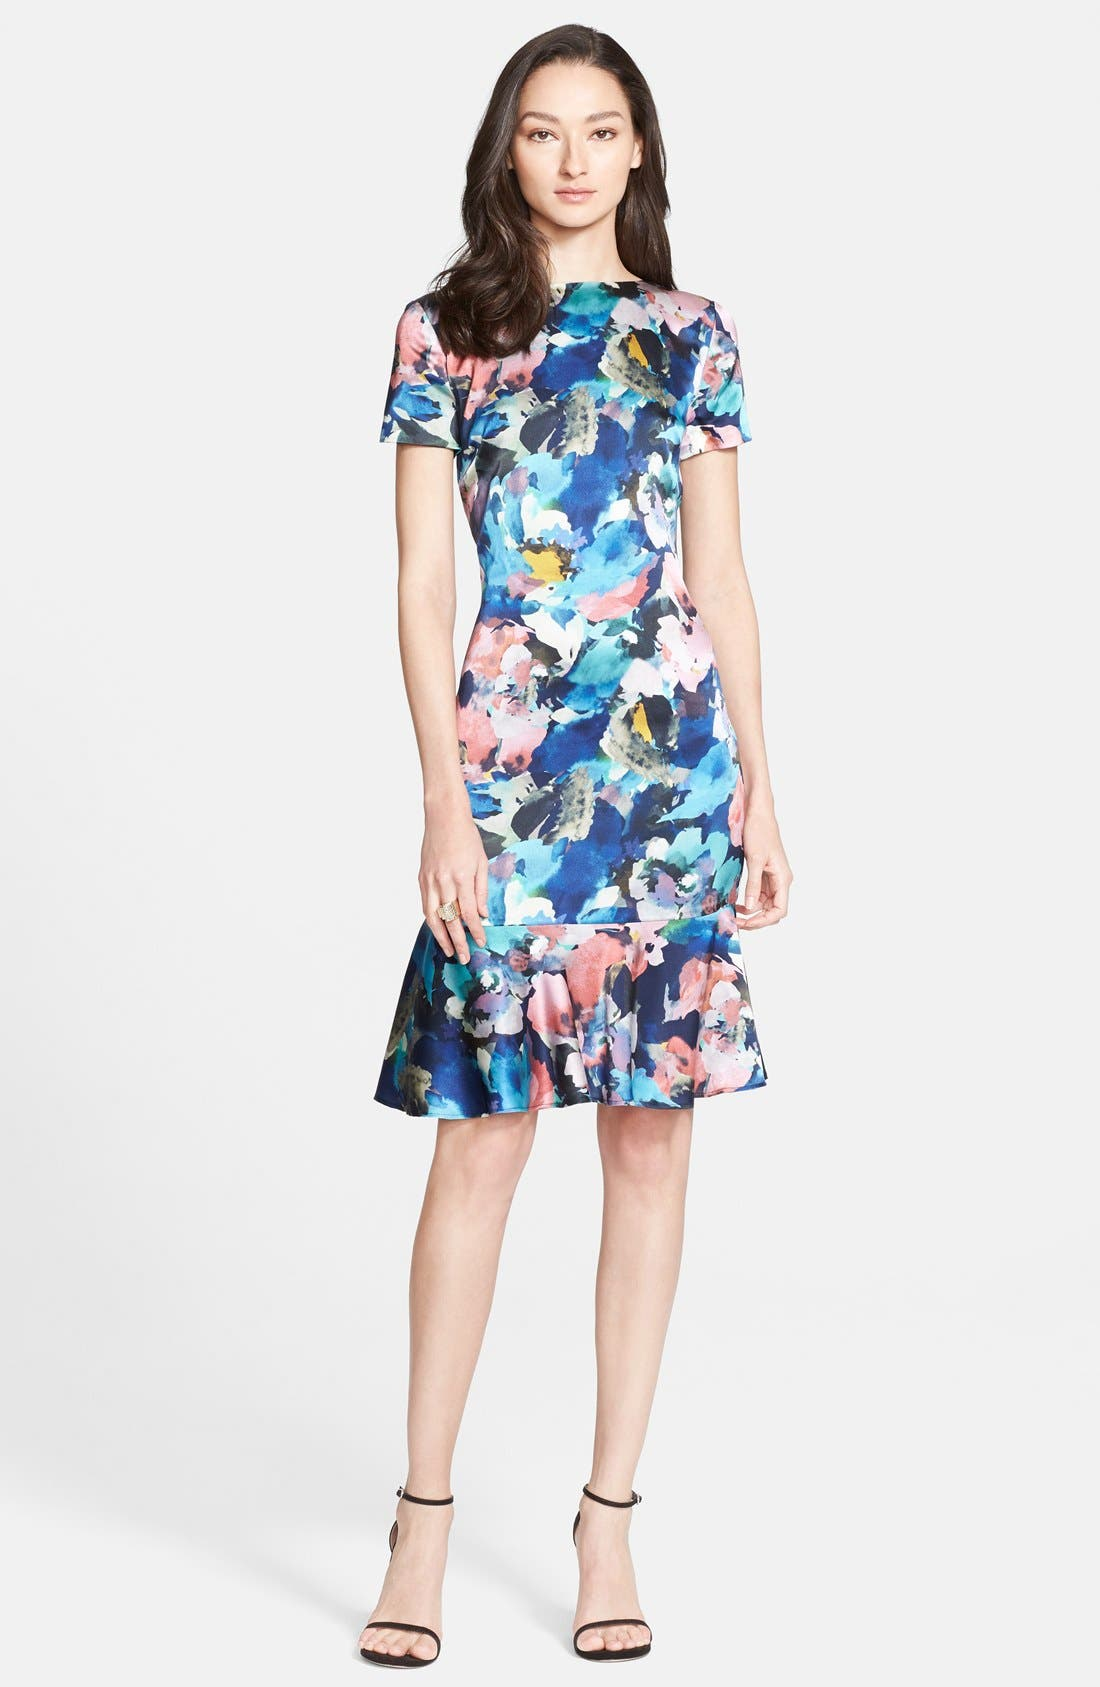 ST. JOHN COLLECTION,                             Collage Floral Print Stretch Silk Charmeuse Dress,                             Main thumbnail 1, color,                             020